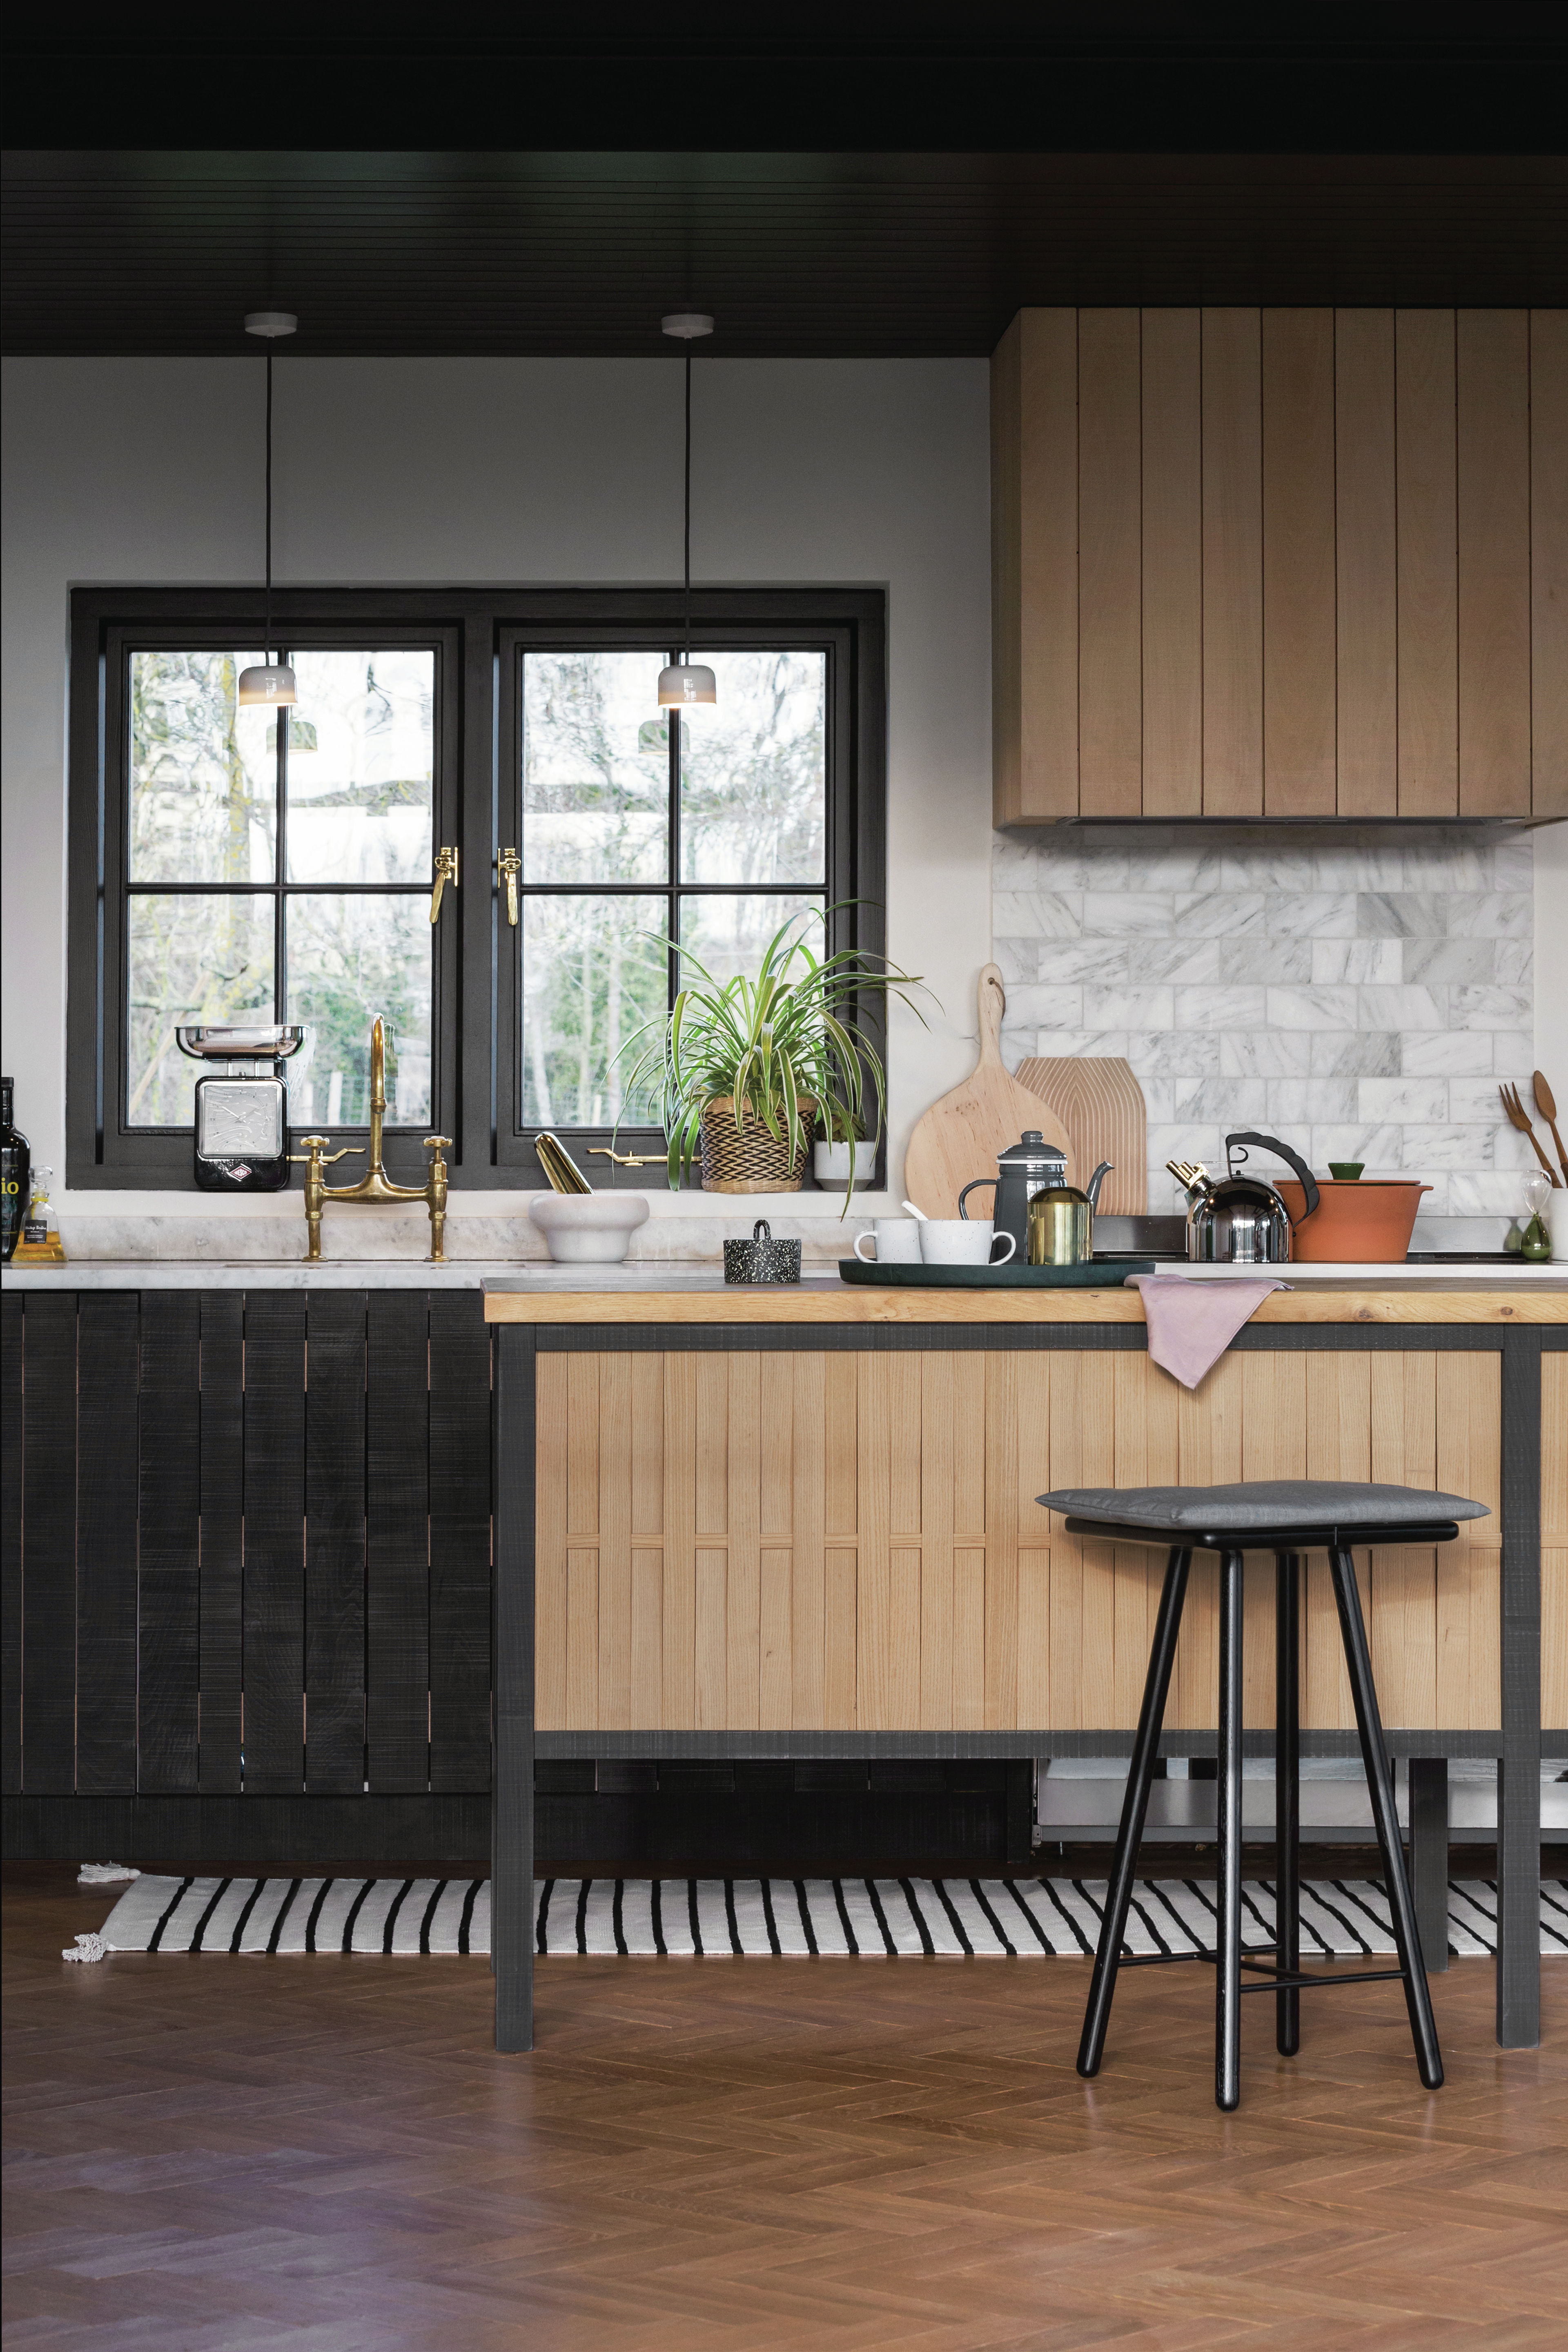 Kitchen window ideas 12 ways to dress your windows   Real Homes